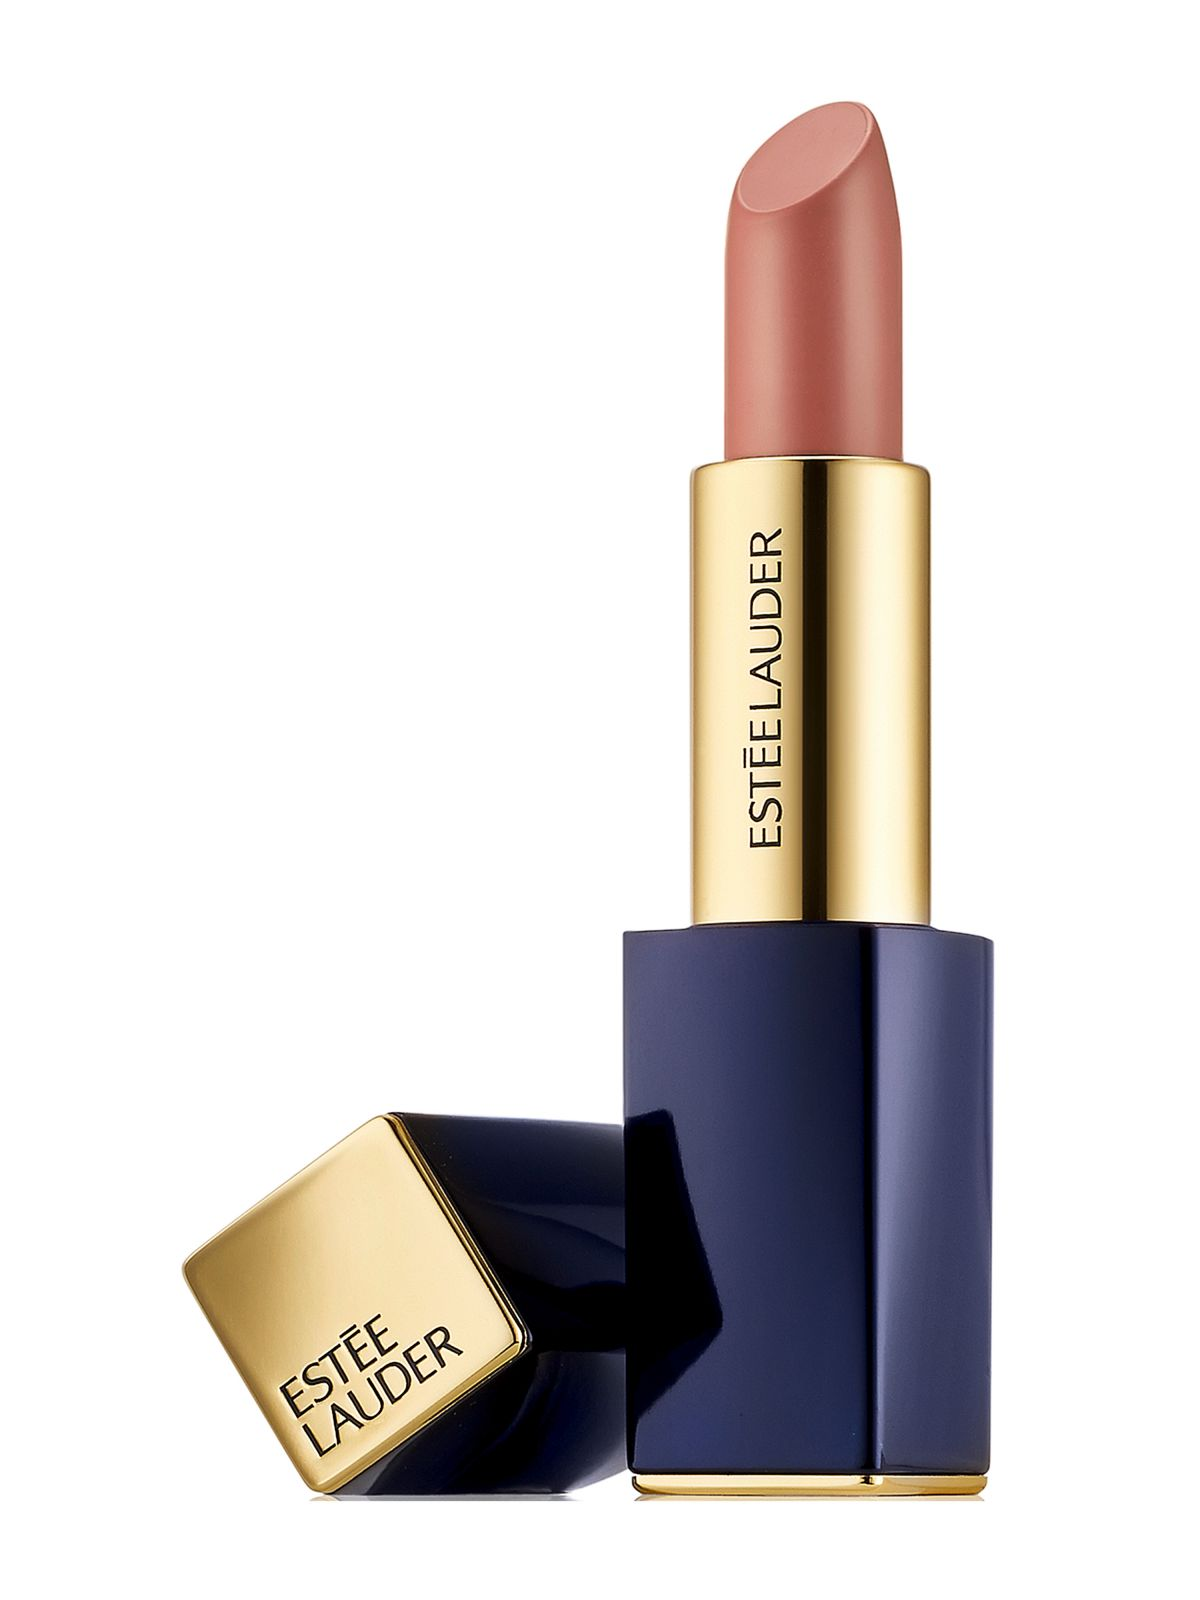 שפתון Pure Color Envyשפתון Pure Color Envy של ESTEE LAUDER